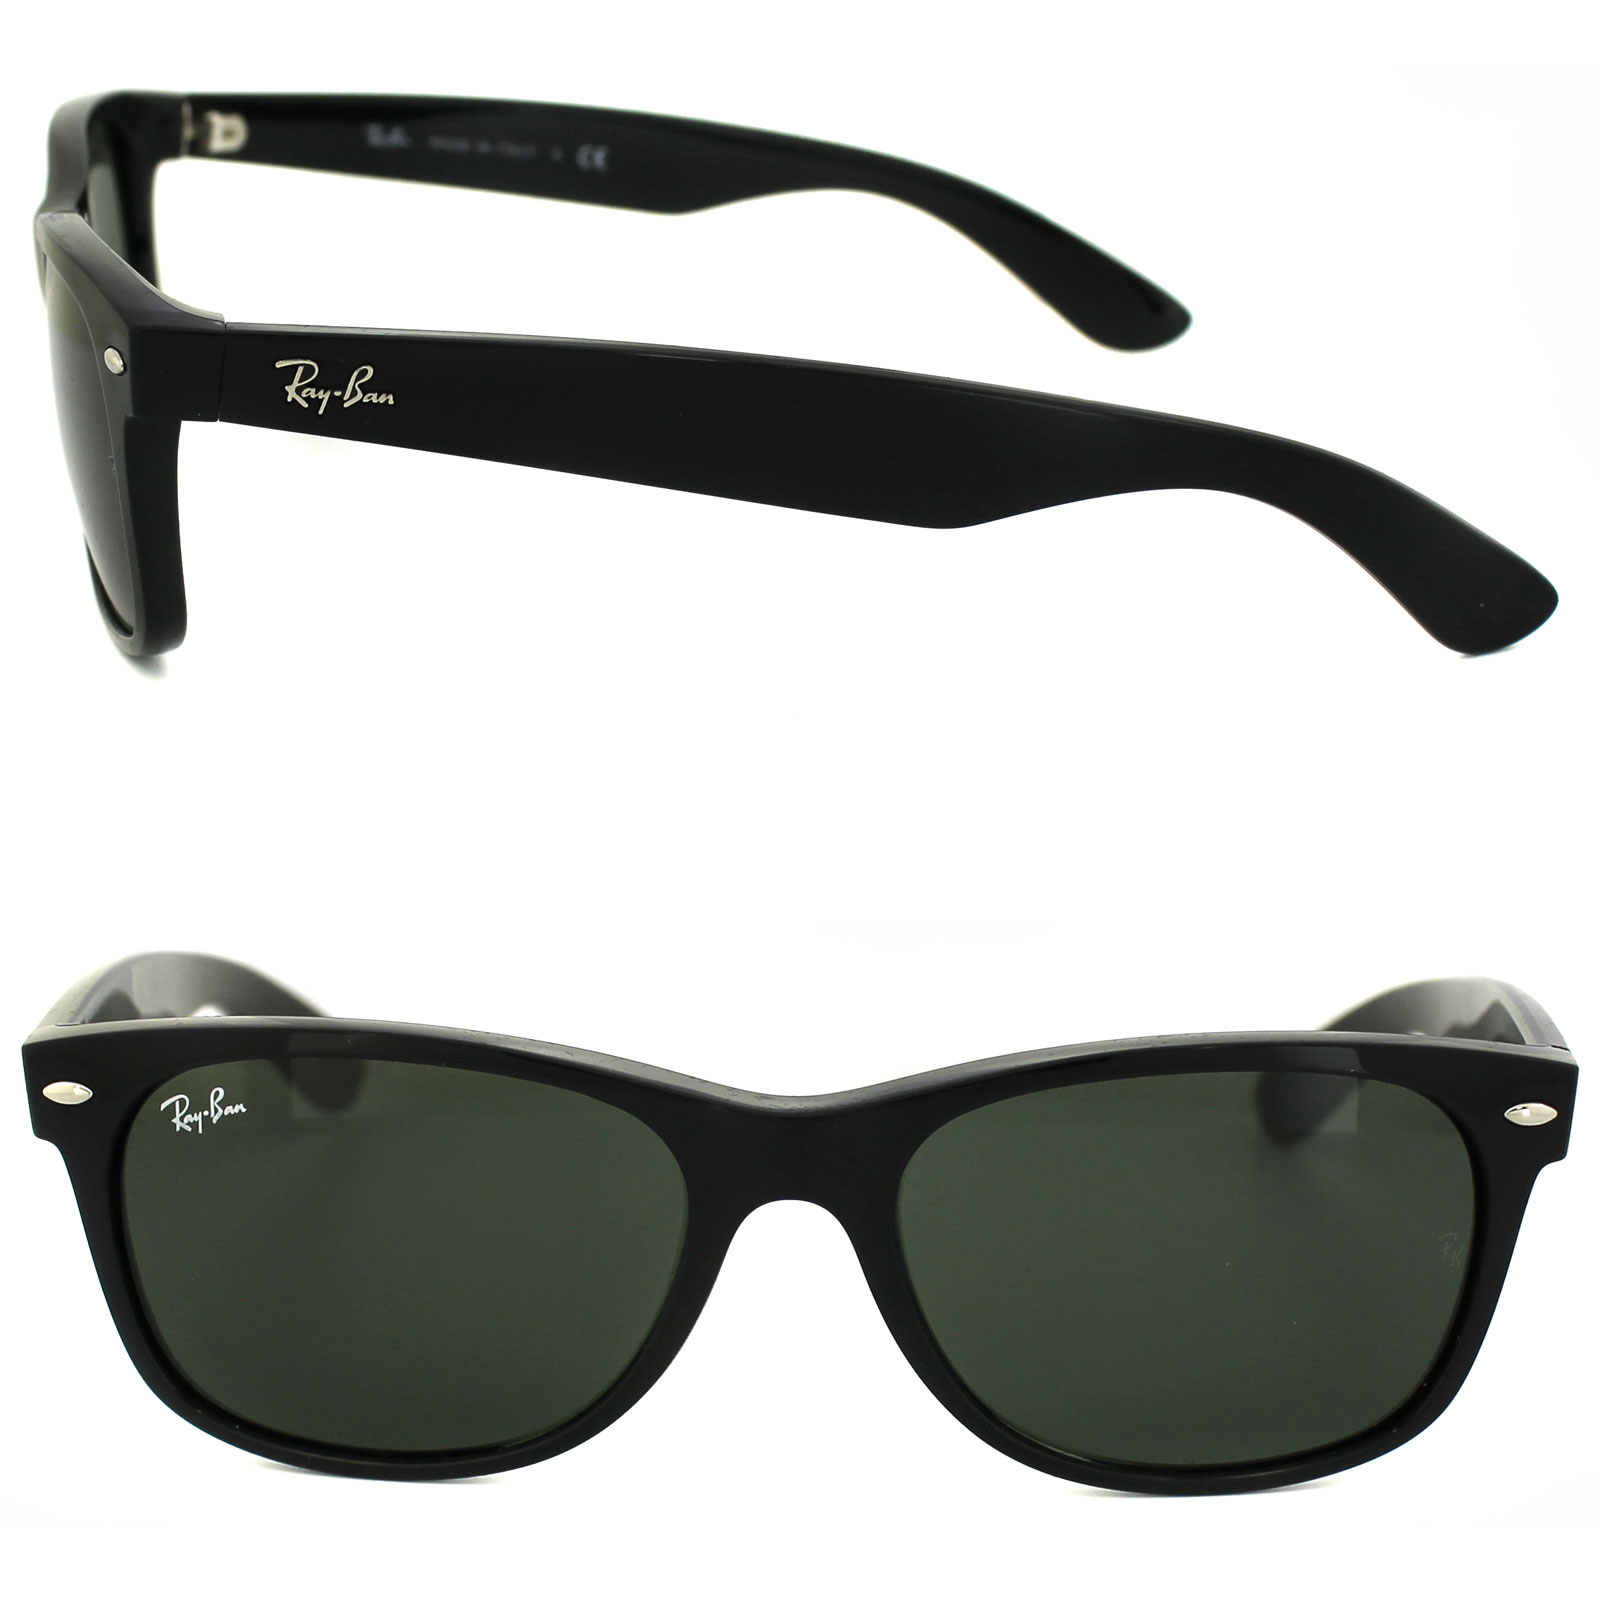 e2fe475e339 Cheap Ray-Ban New Wayfarer 2132 Sunglasses - Discounted Sunglasses